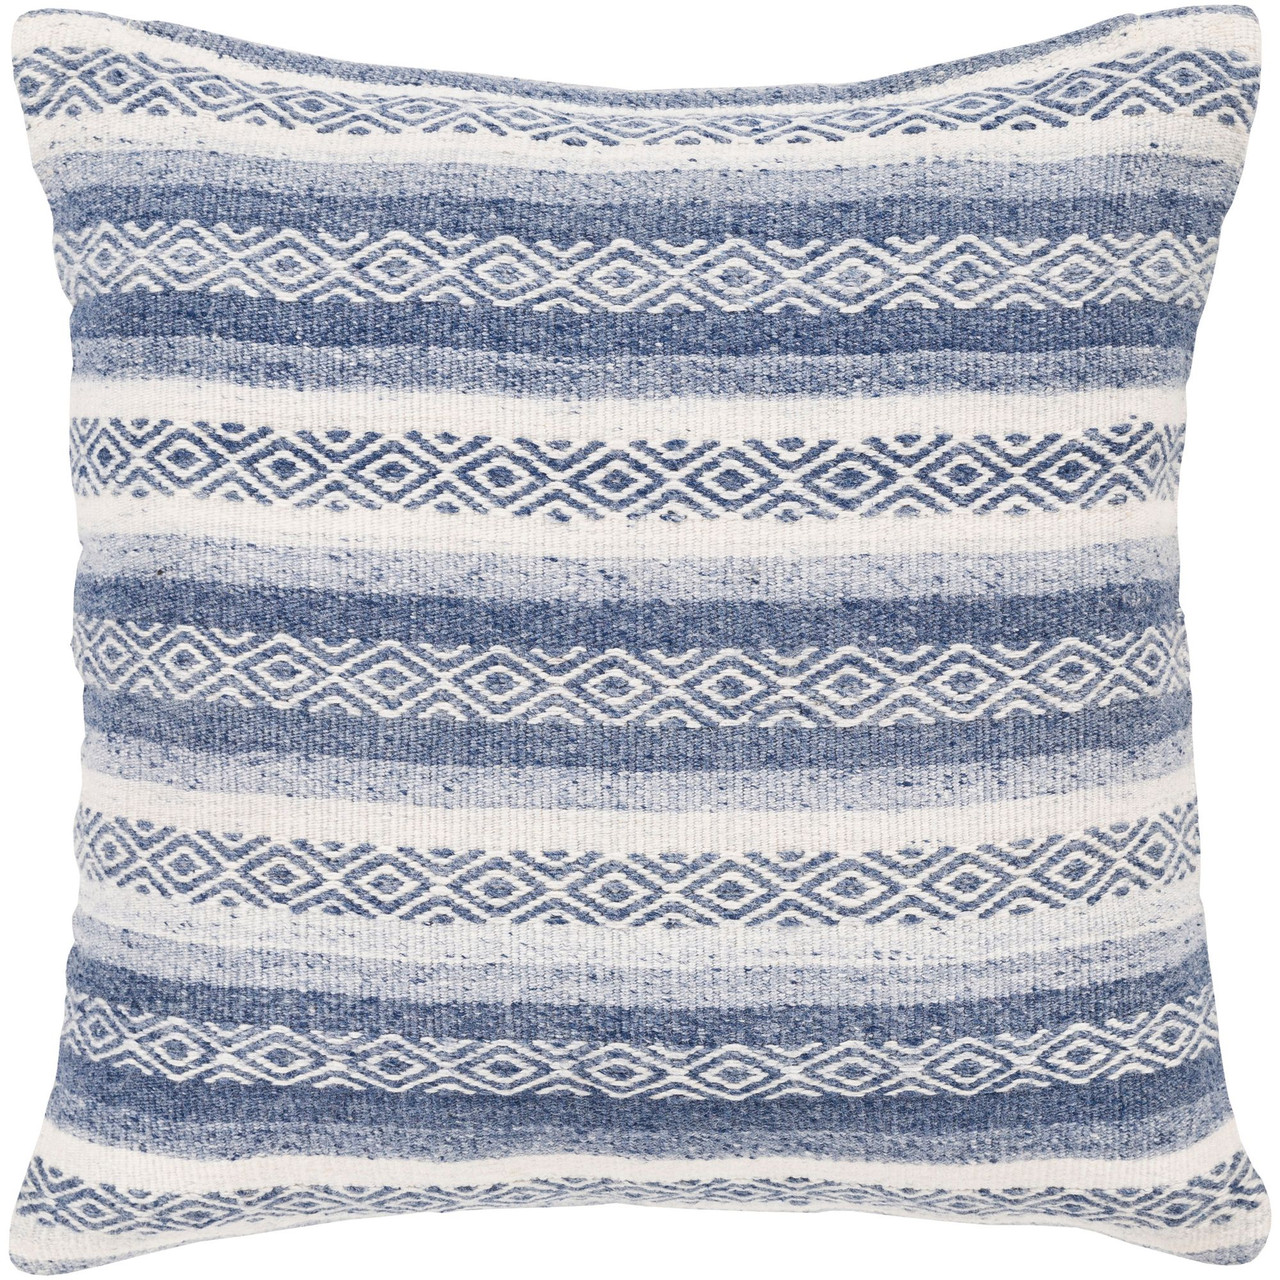 20 navy blue and white geometric square throw pillow cover